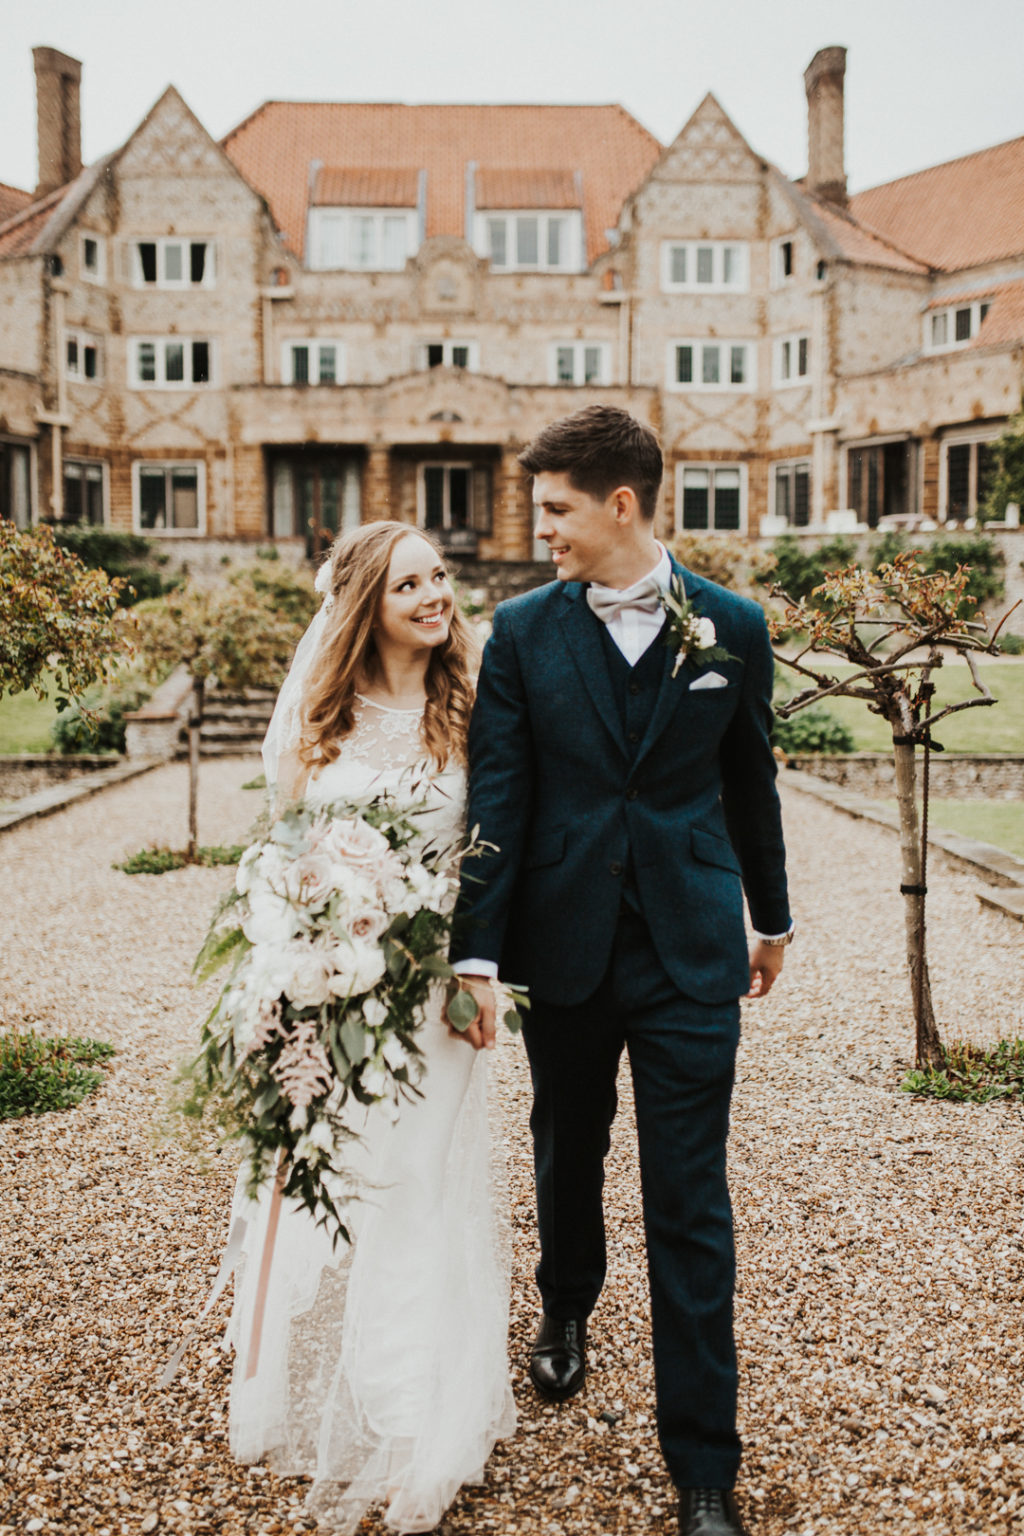 This couple went for a cool rustic wedding with everything they love    no theme or color scheme